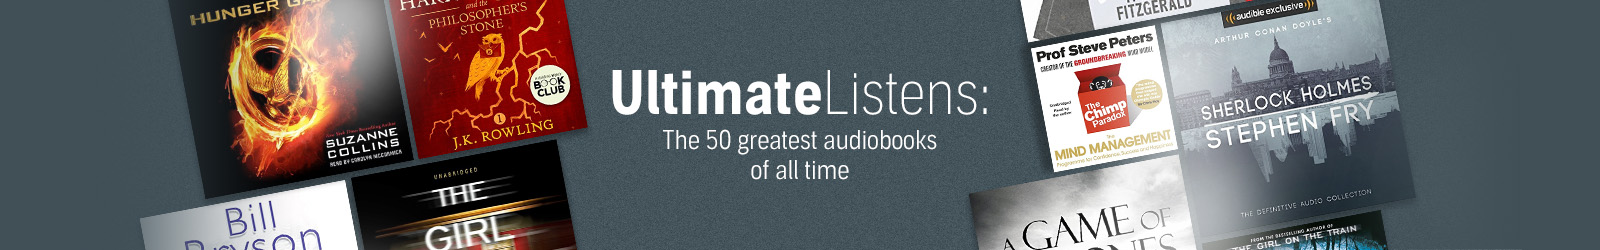 Audible's Ultimate Top 50 Listens